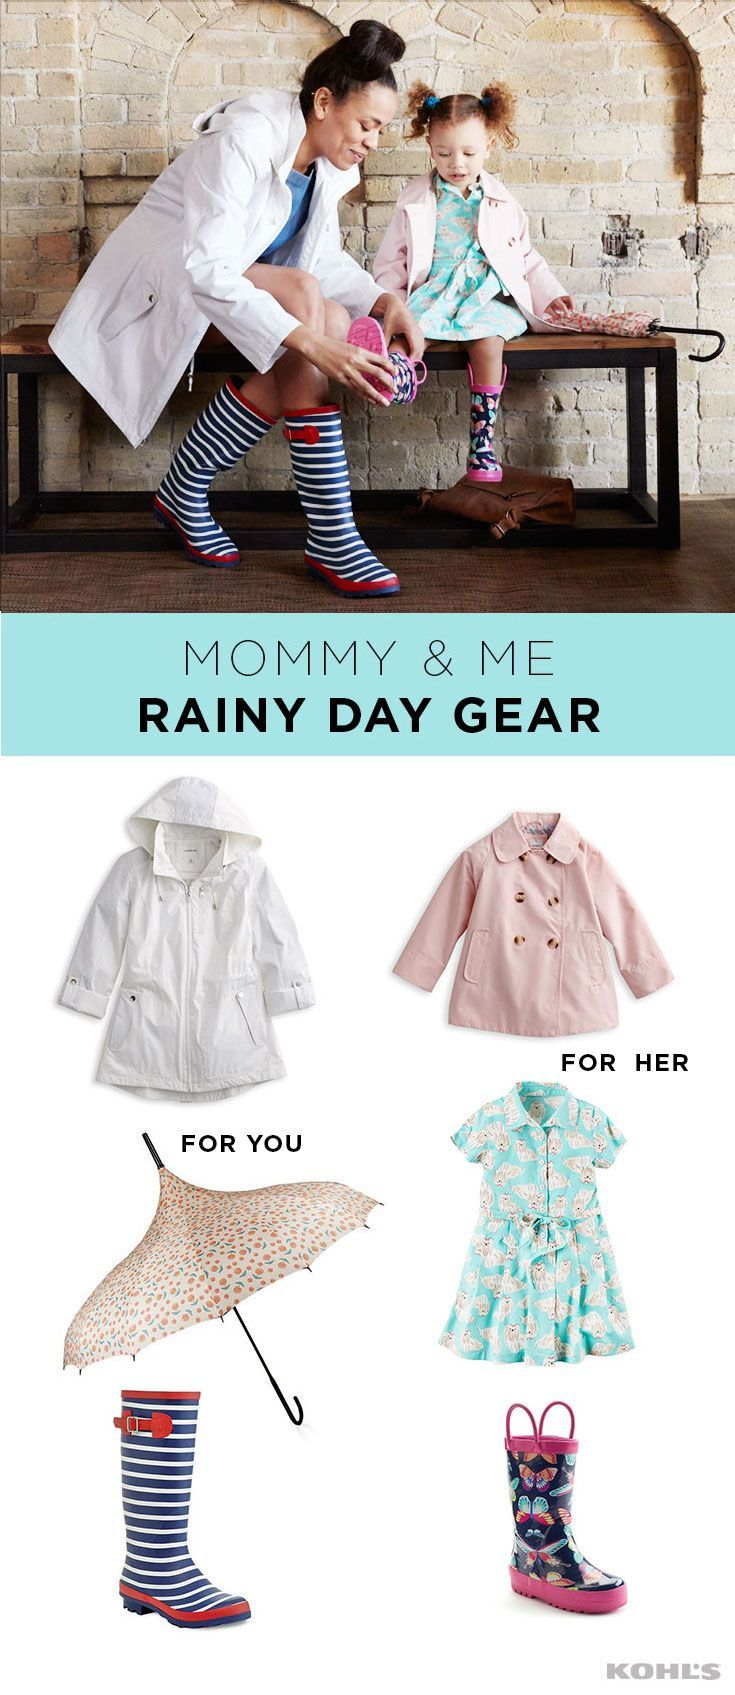 April showers bring cute rainy-day gear. Splash through the puddles with your little one in style. Pair a white raincoat with a floral umbrella and blue and white striped rain boots for you. Dress your mini me in a blush raincoat with a cute dress and pink and navy floral rain boots. You'll be singing in the rain in no time! Find spring styles for women and girls at Kohl's. #RaincoatsForWomenTravel